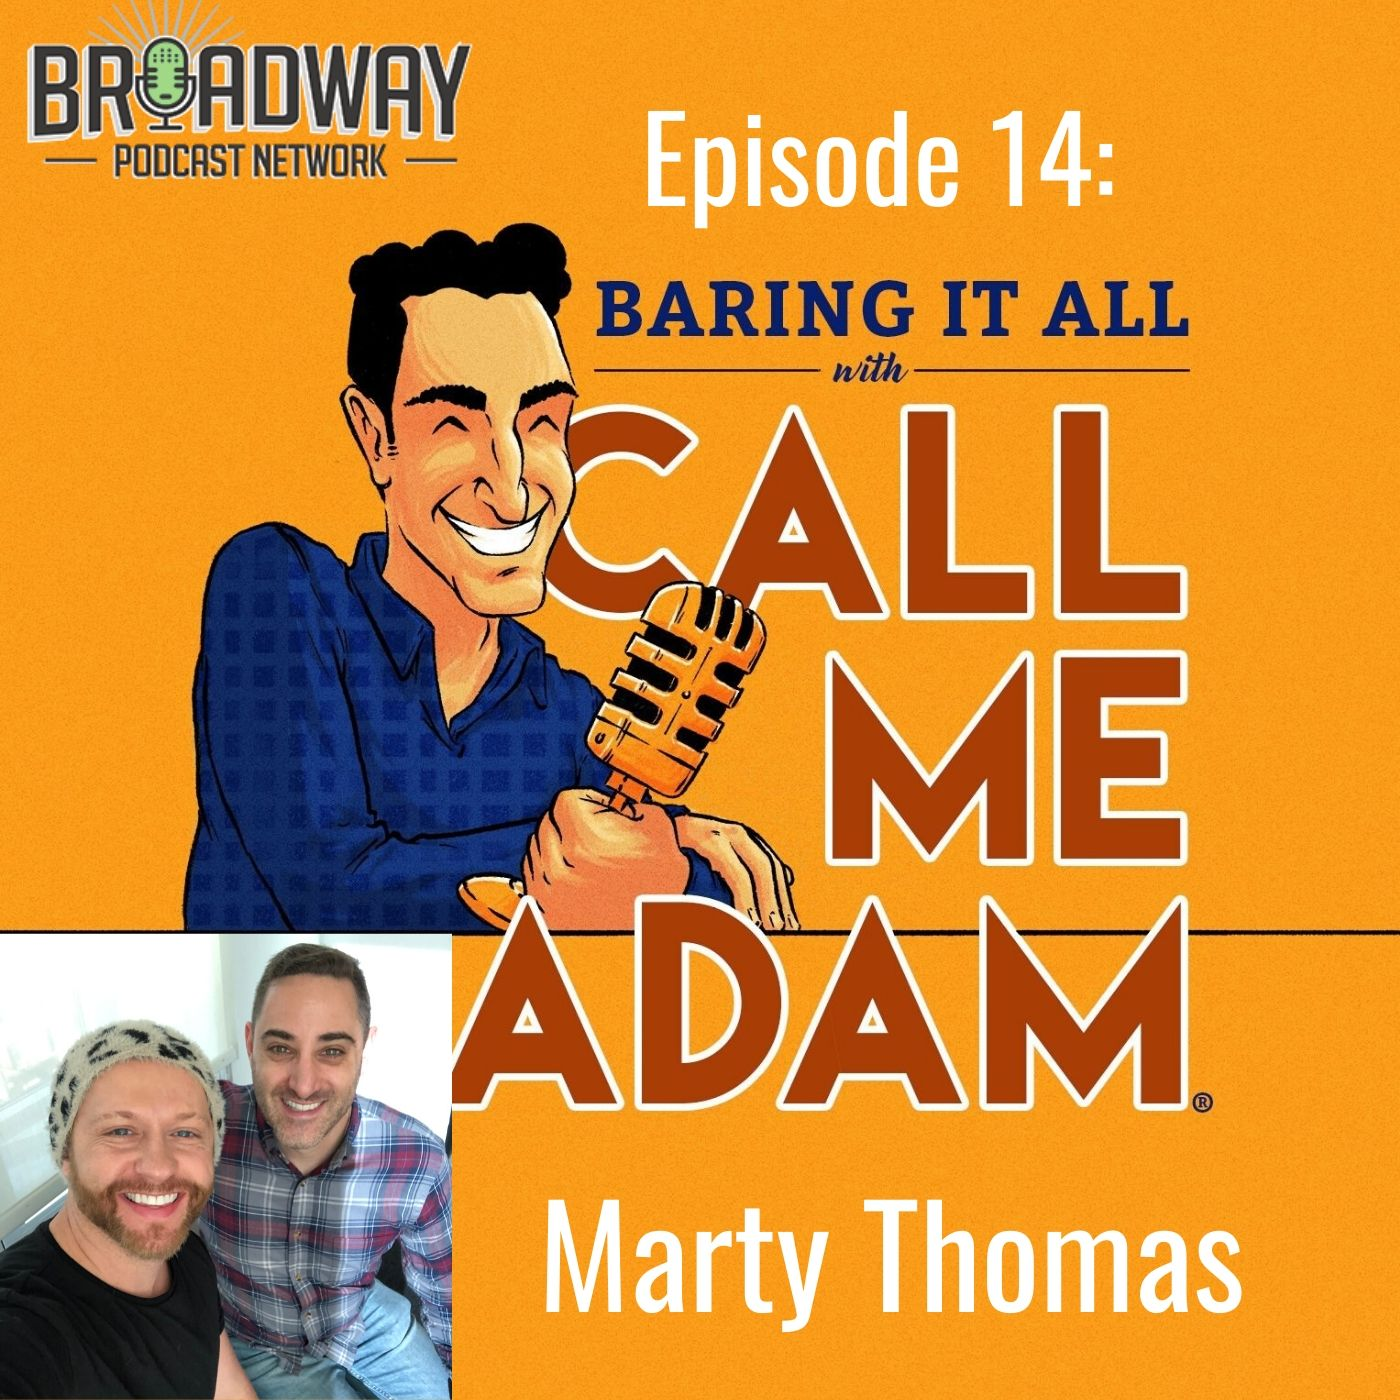 Baring It All With Call Me Adam Ep 14 Marty Thomas